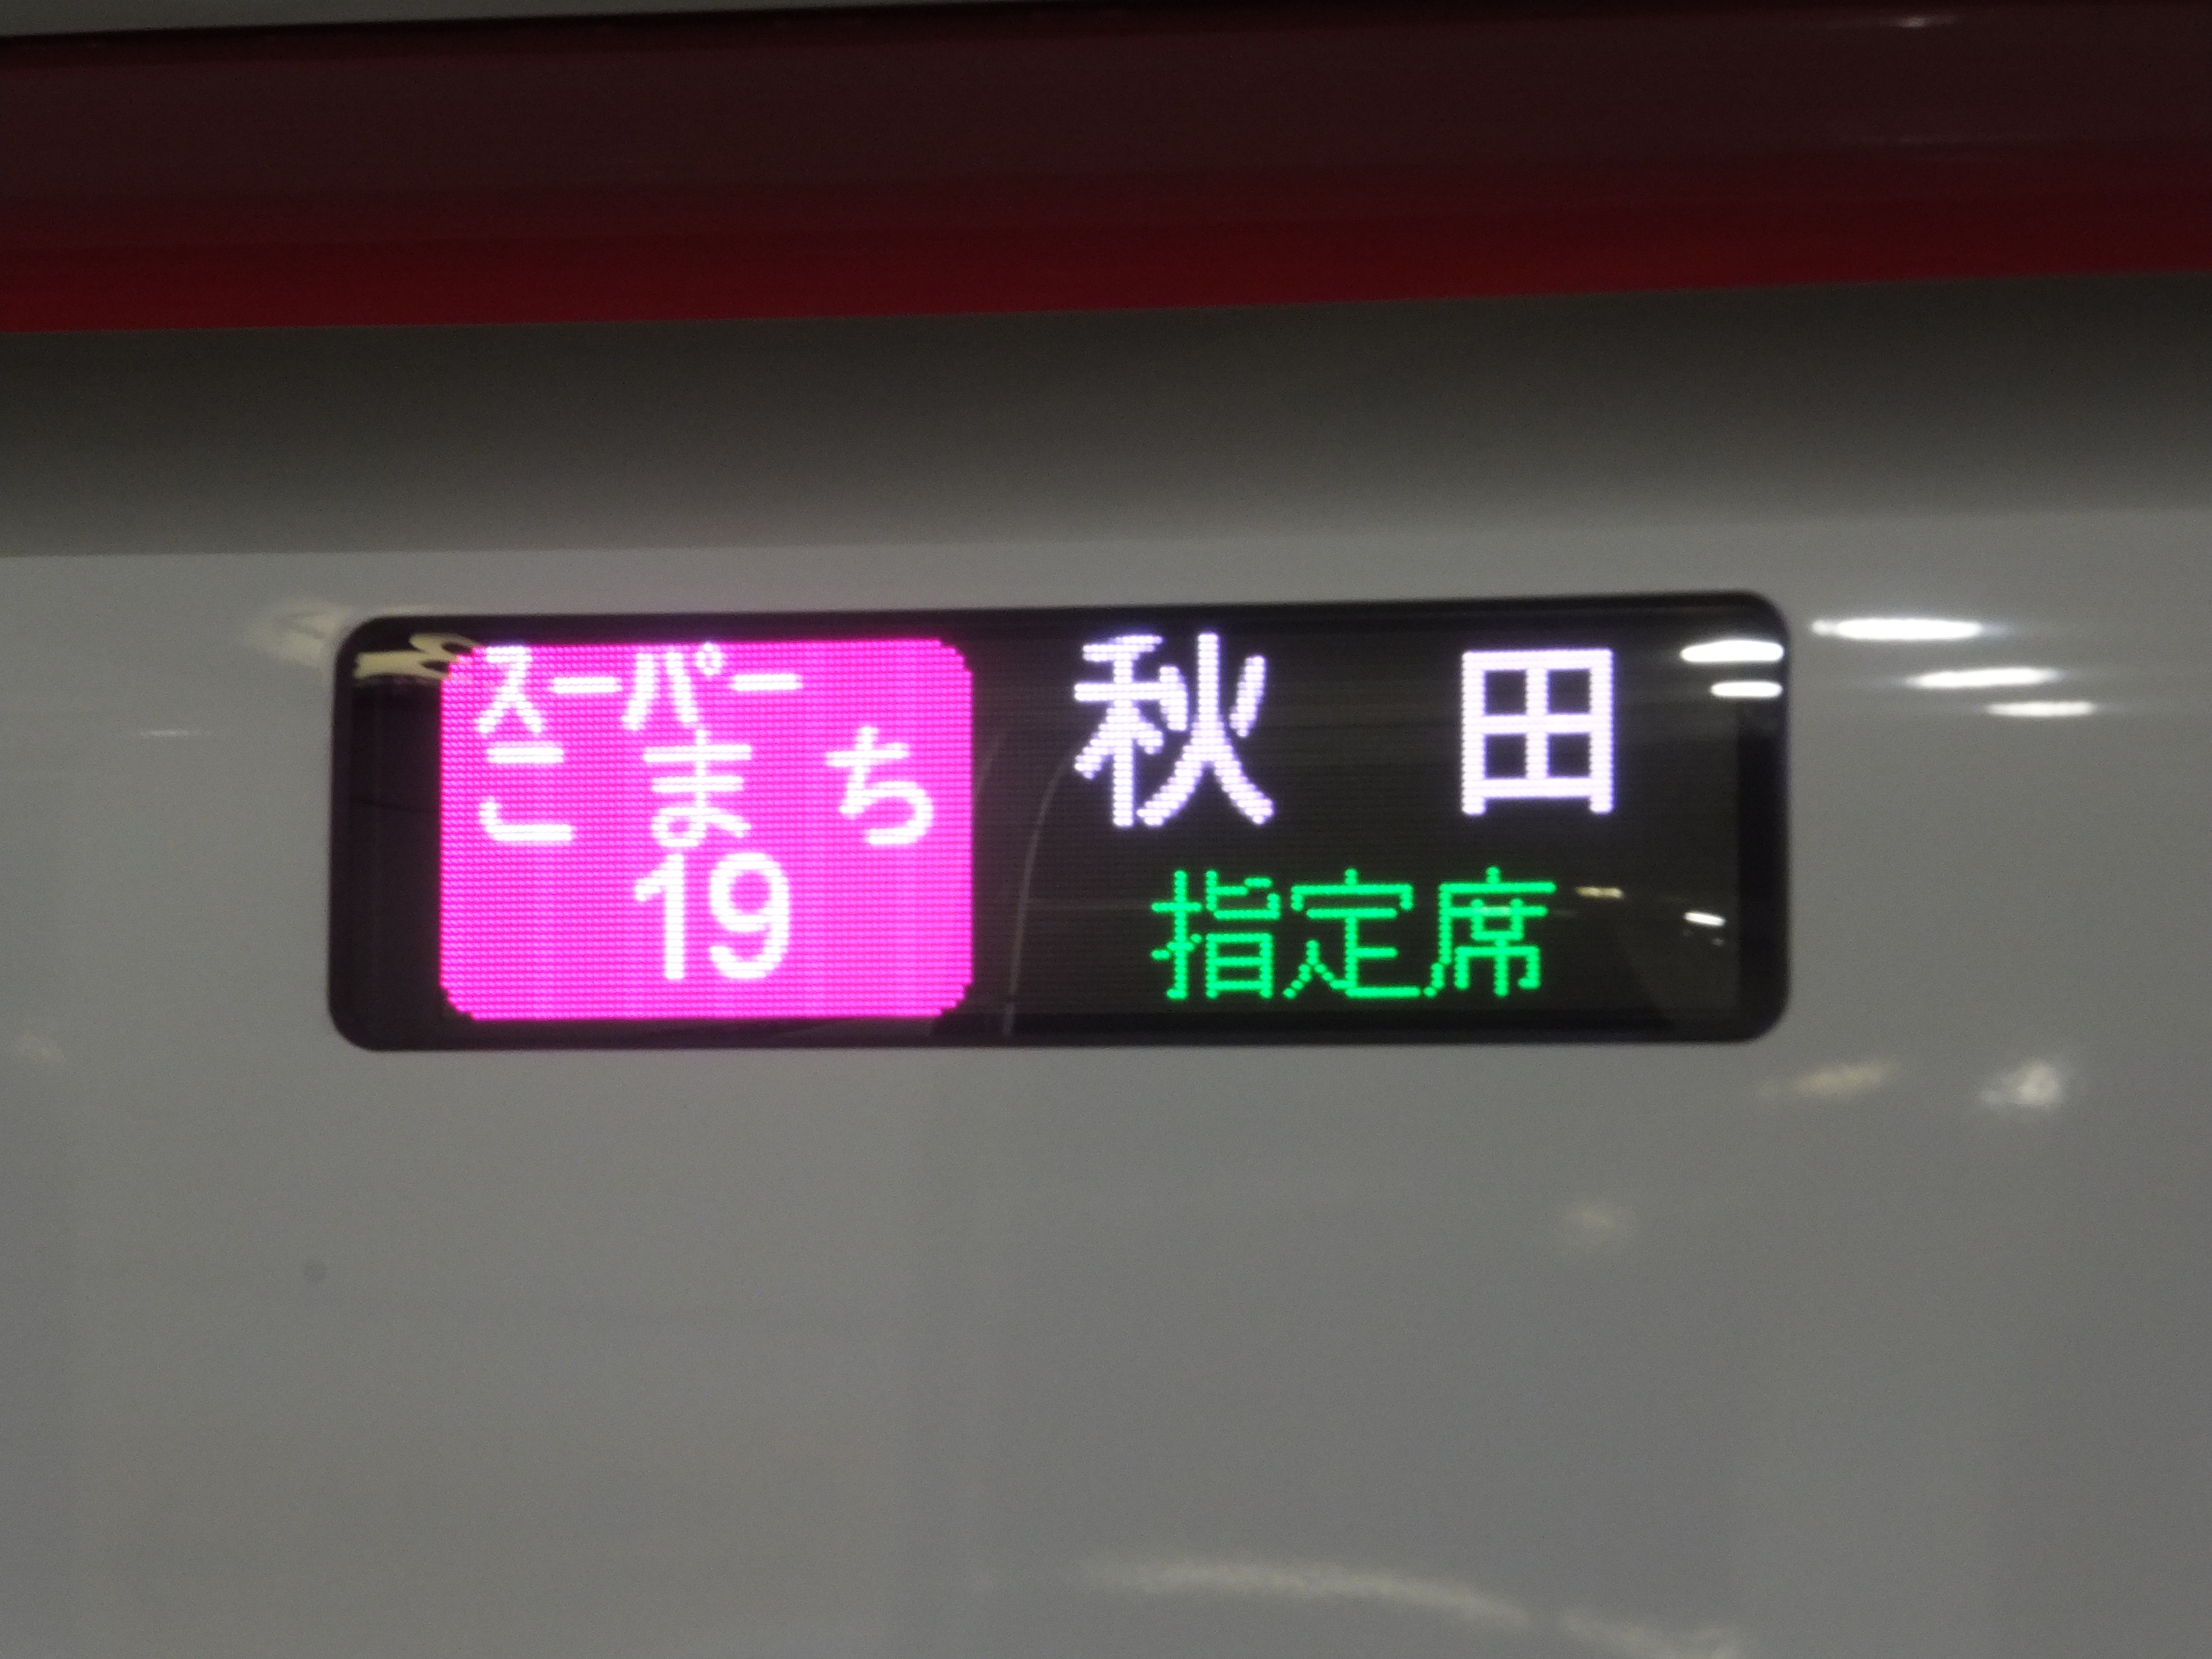 https://upload.wikimedia.org/wikipedia/commons/5/54/Sign_of_Super-Komachi_19_bound_for_Akita.jpg